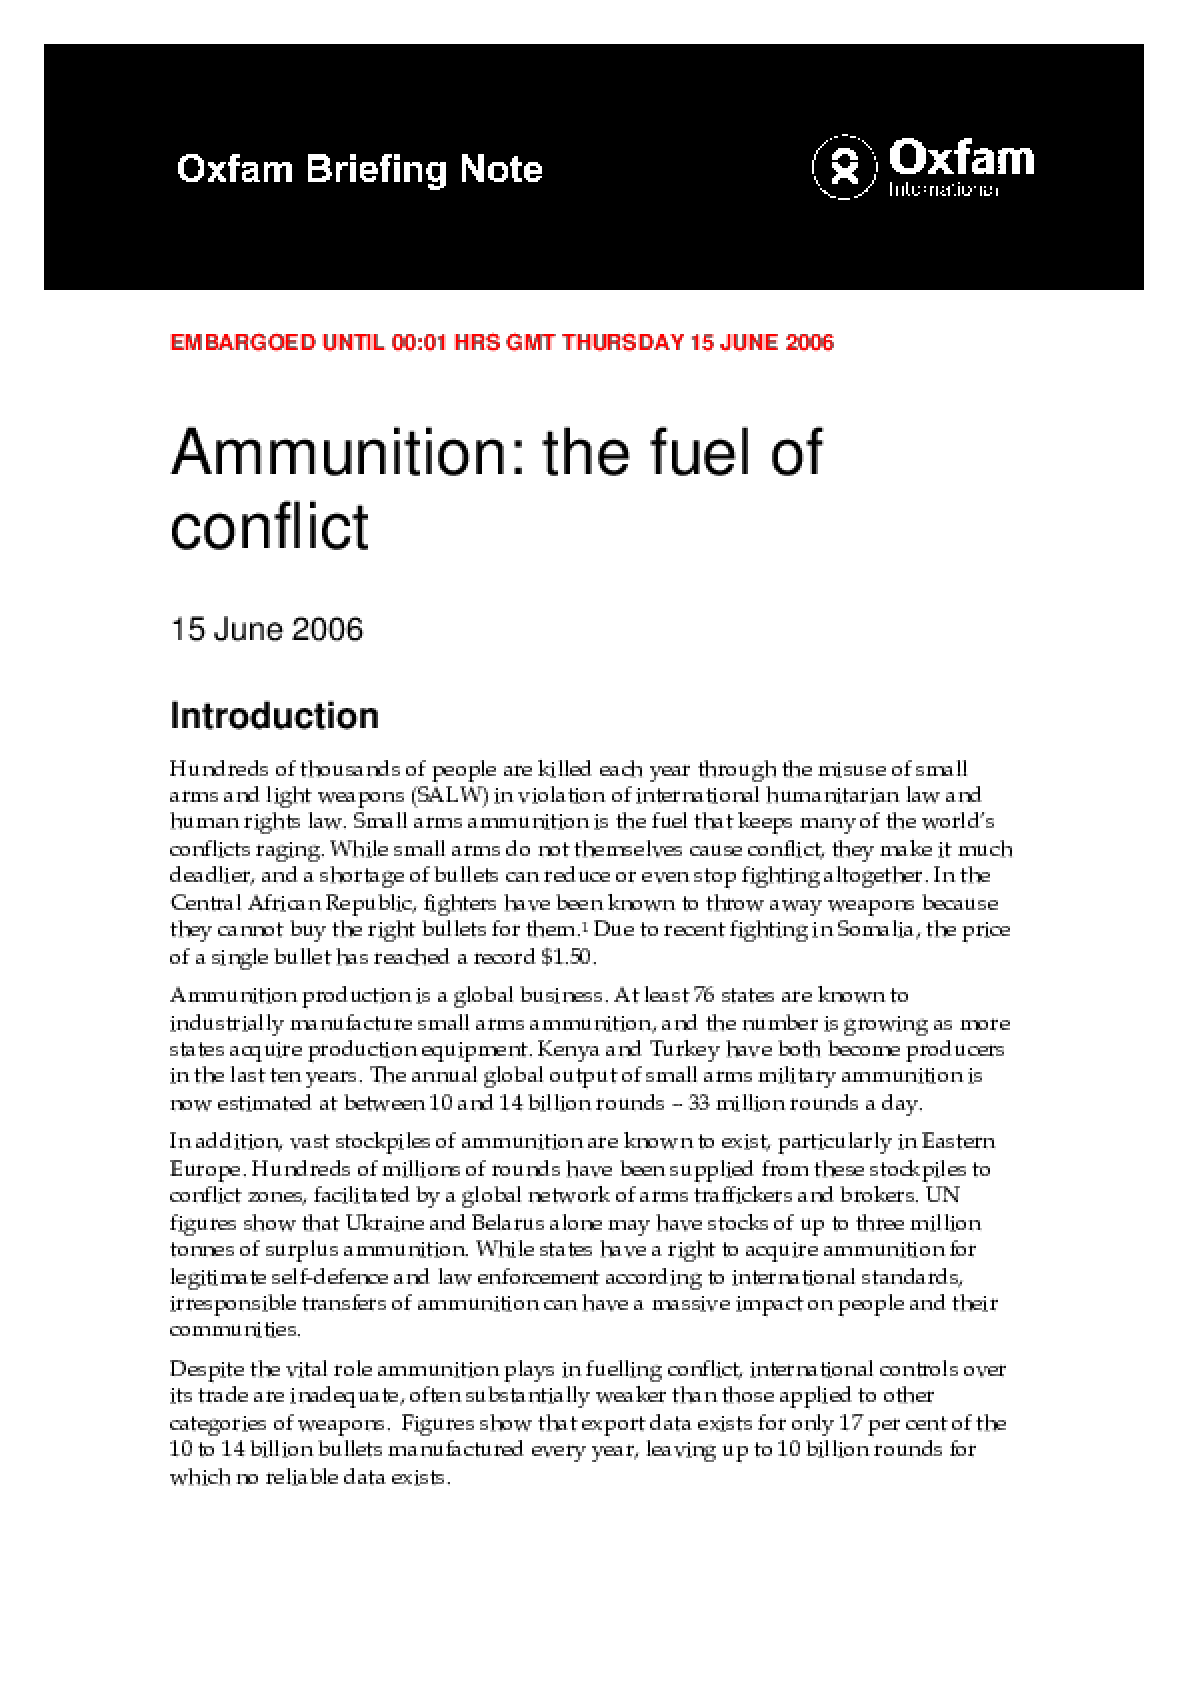 Ammunition: The Fuel of Conflict